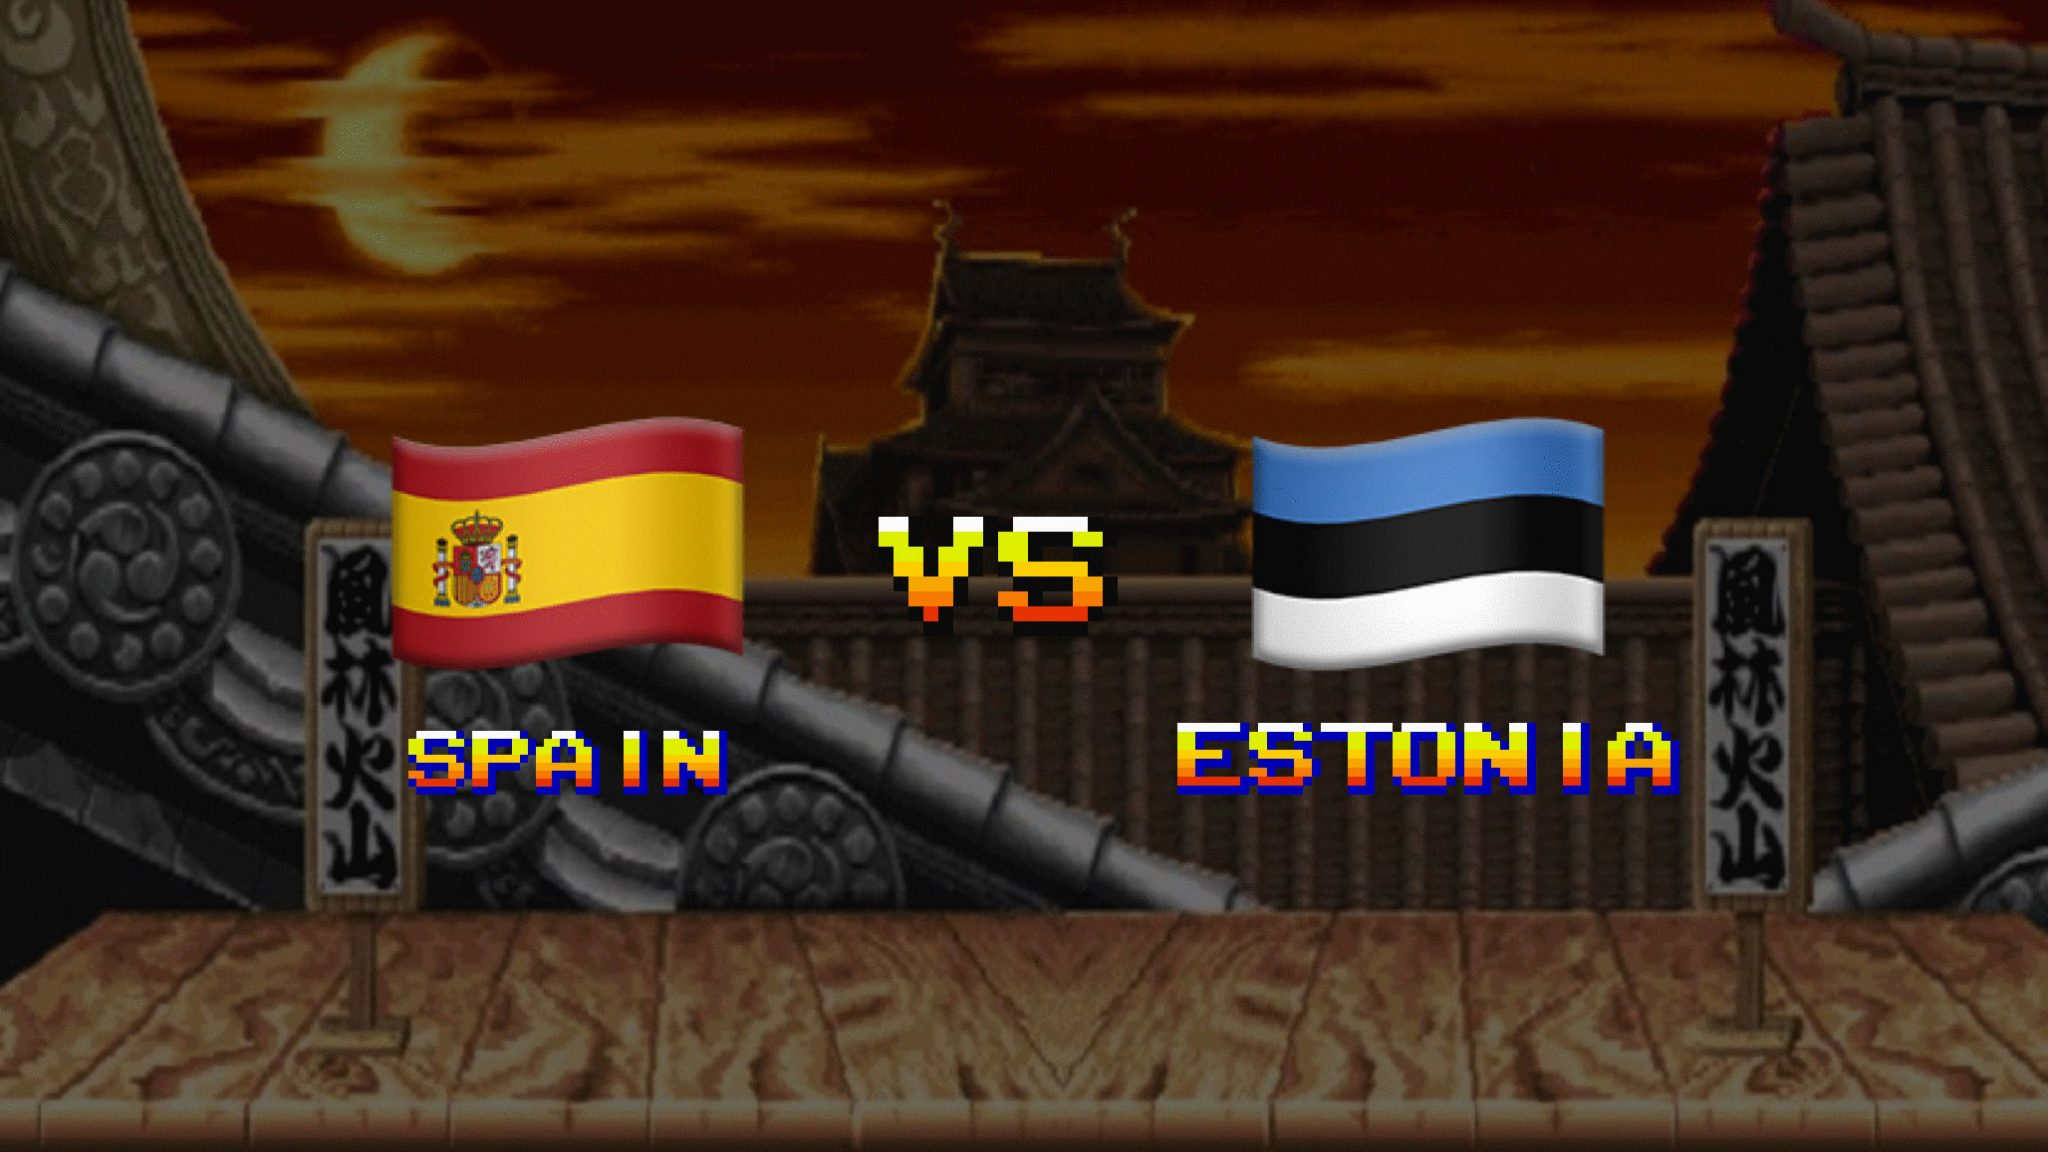 What Spain -or your country- could learn from Estonia. What your country could learn from Estonia.